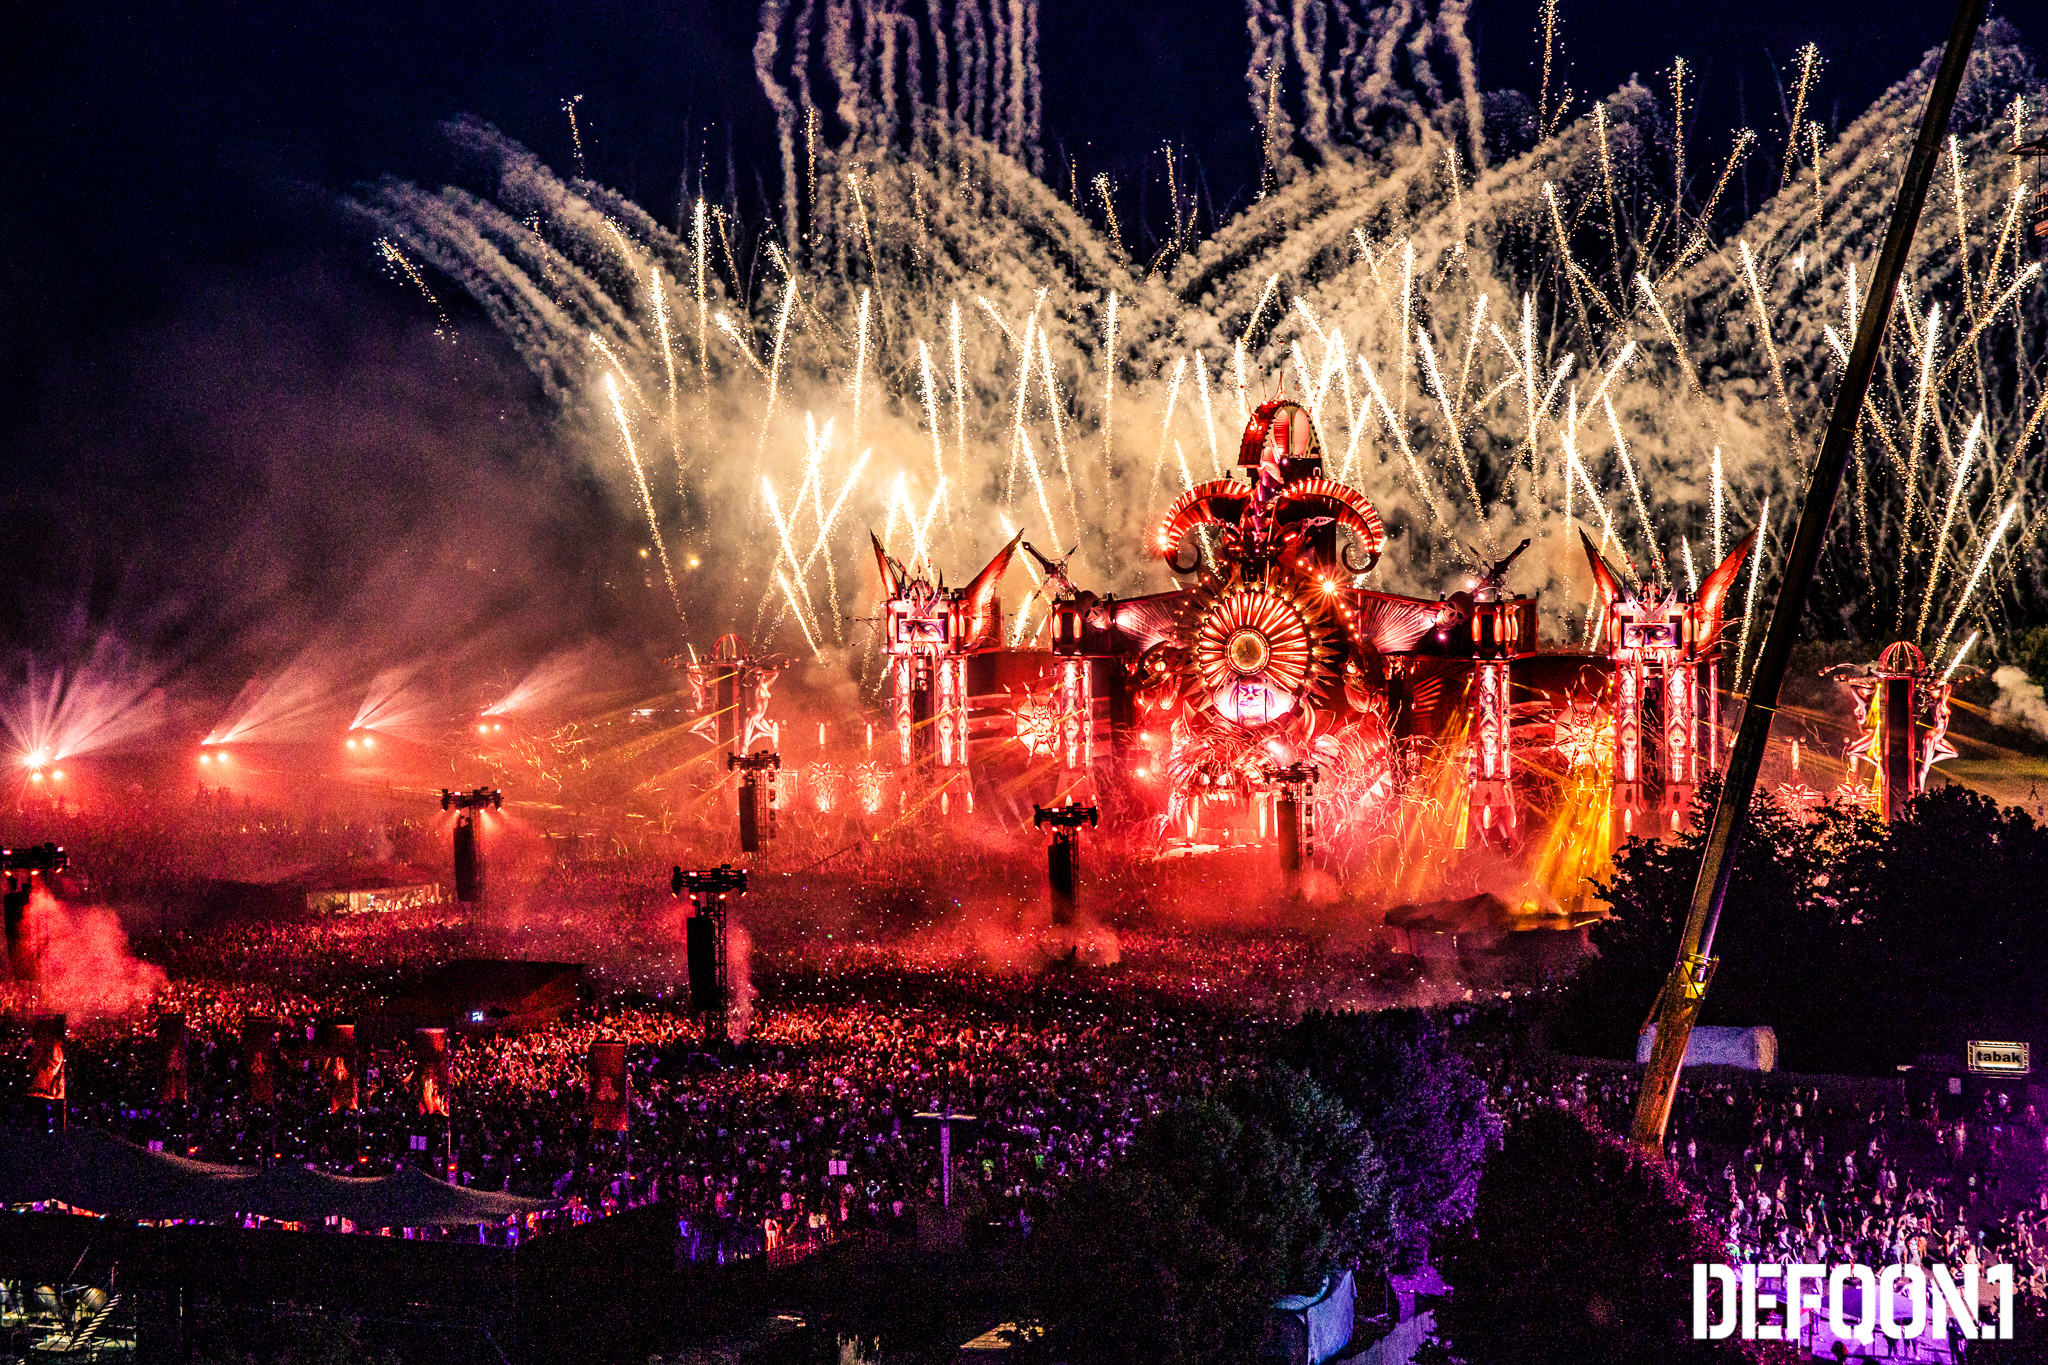 Defqon.1 / Picture: Backbone International